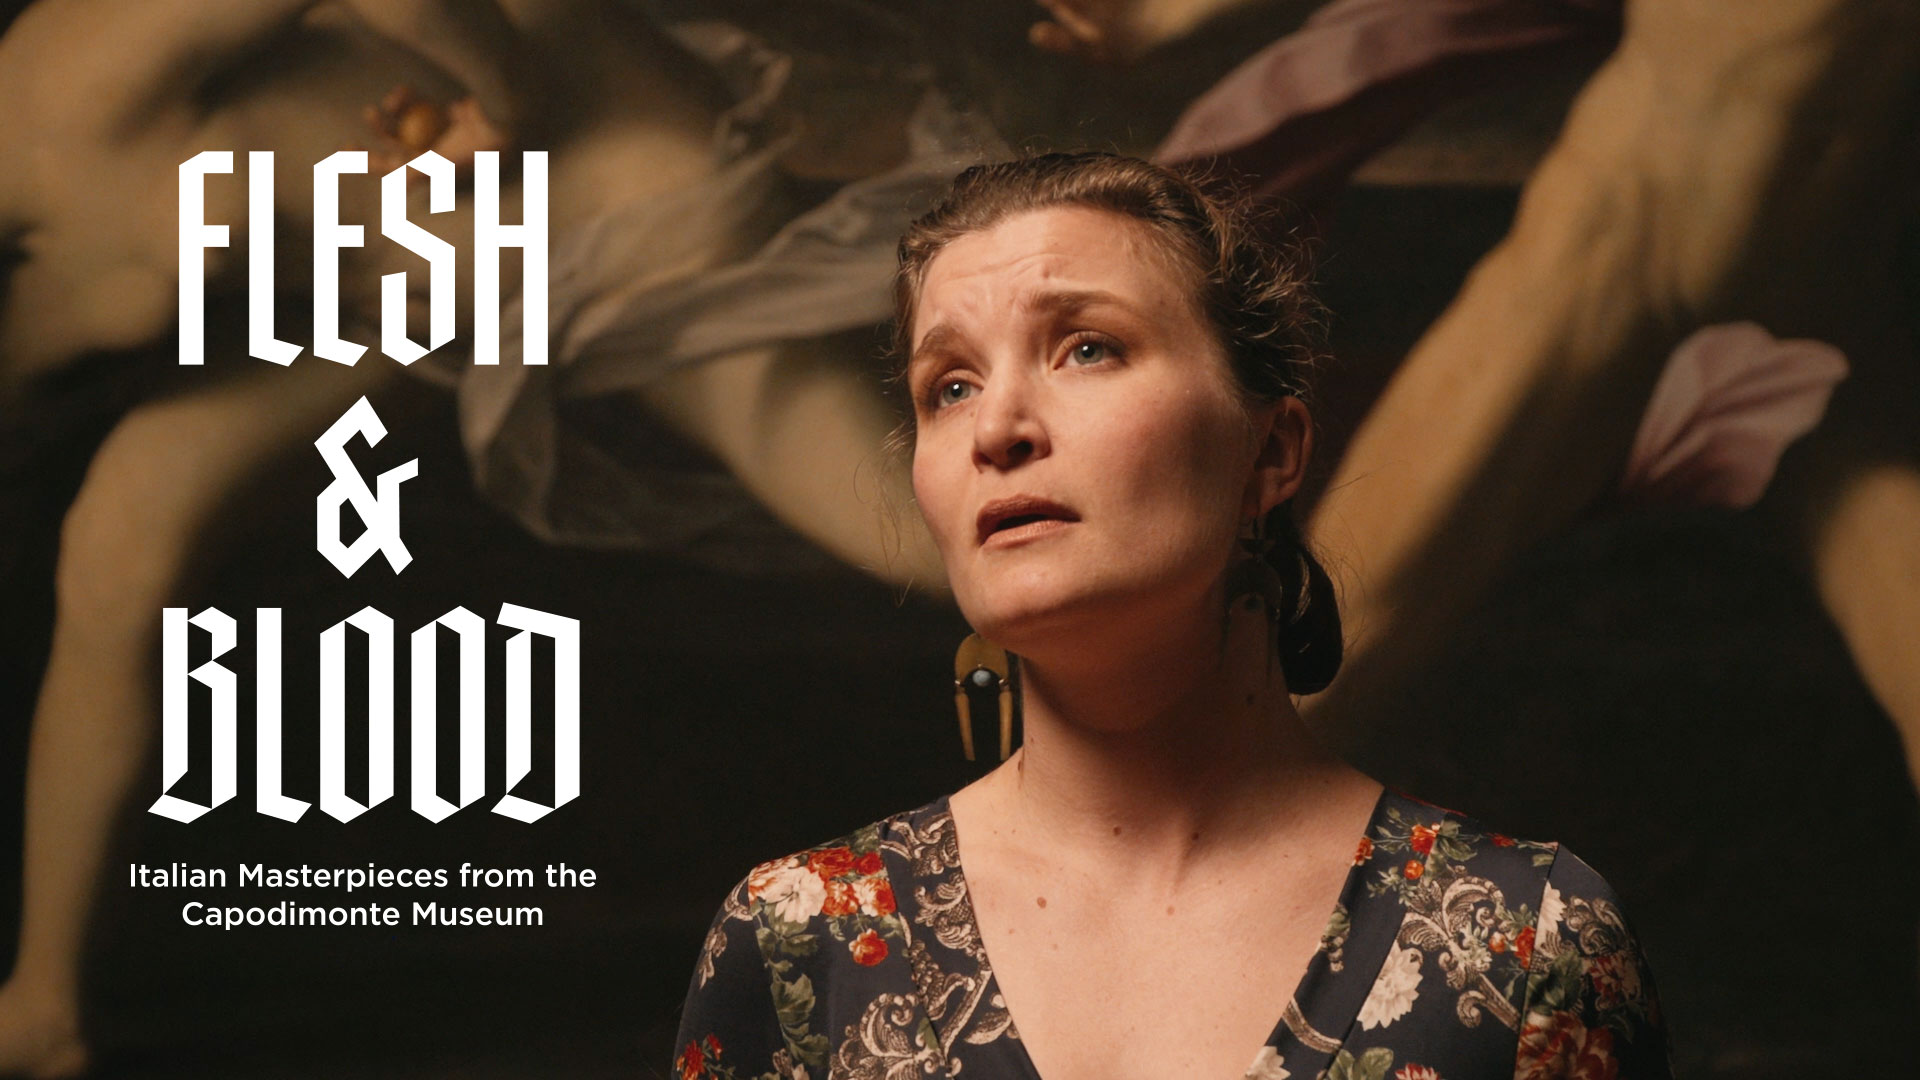 Seattle Opera Visits Flesh and Blood